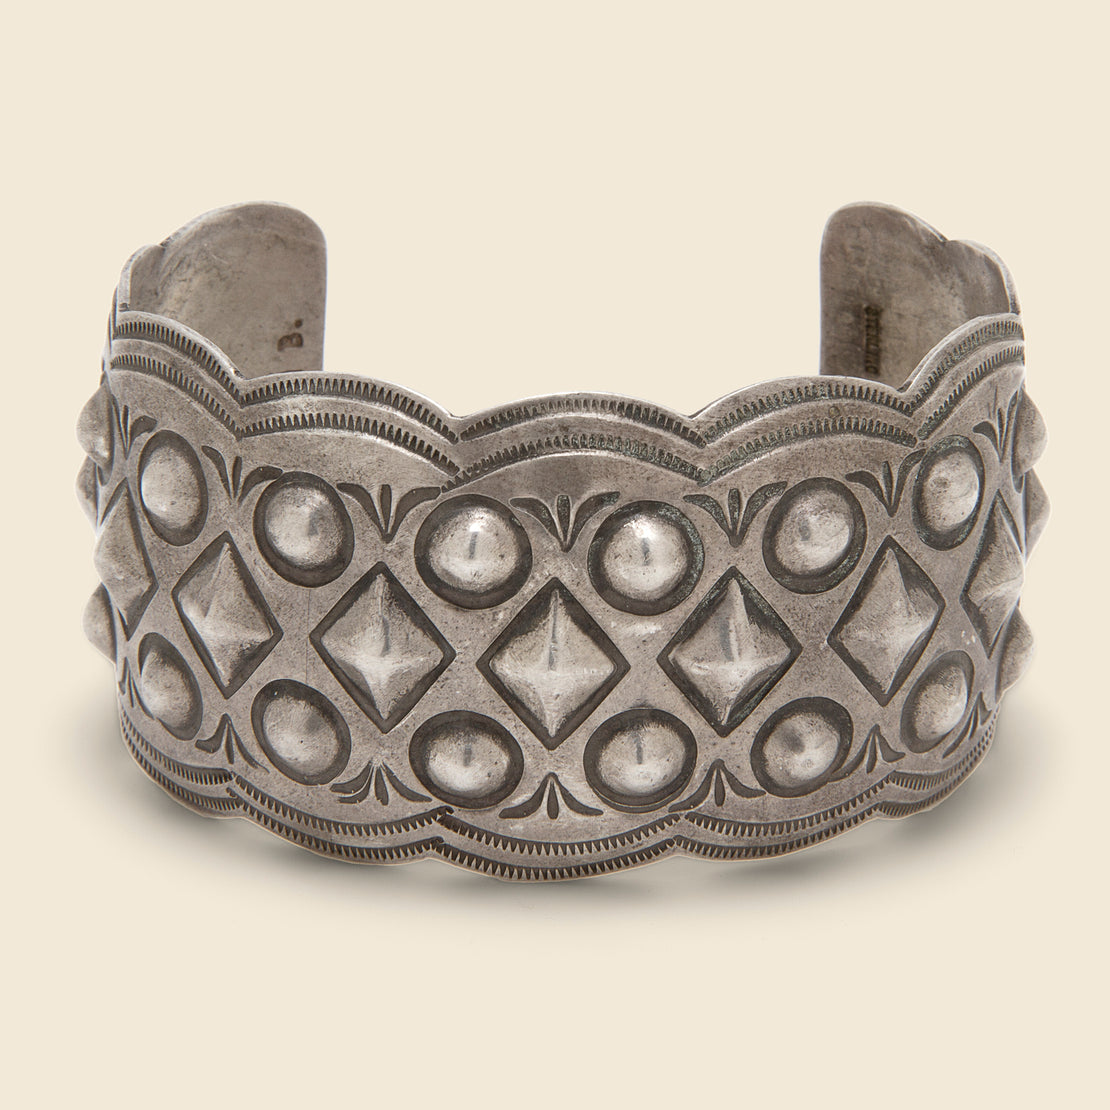 Vintage Large Studded Cuff - Sterling Silver